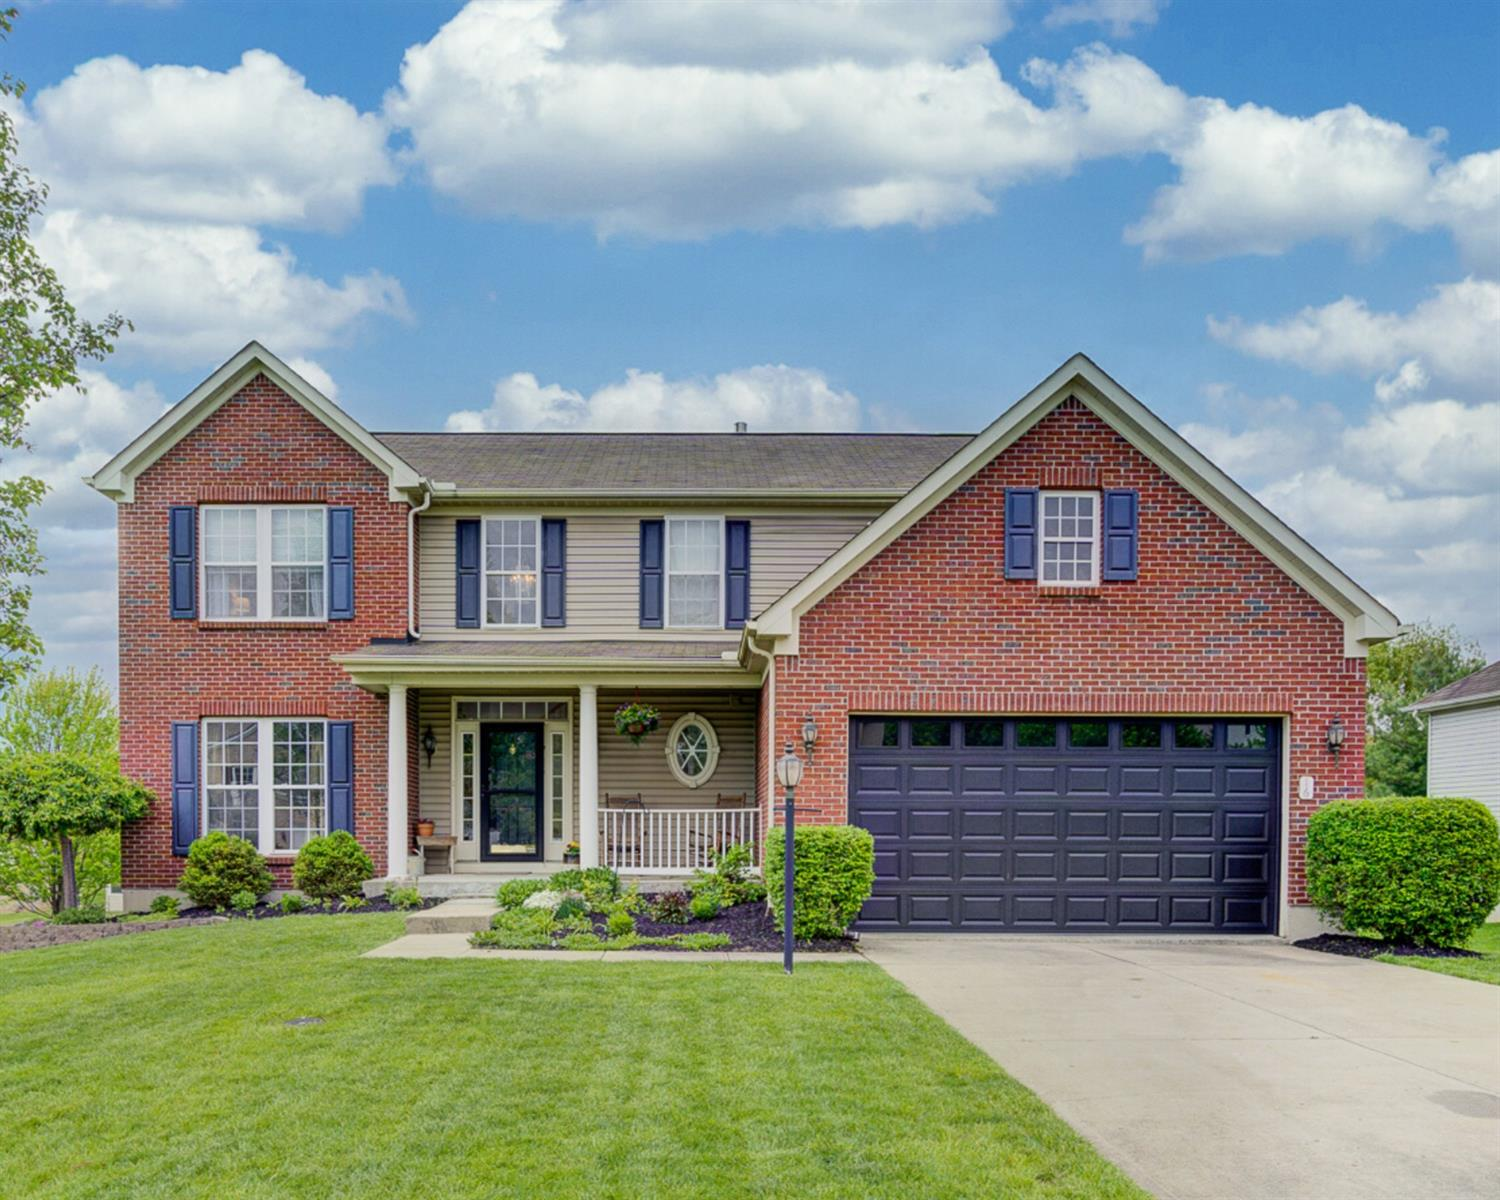 Property for sale at 16 Ridge Wood Drive, Monroe,  Ohio 45050